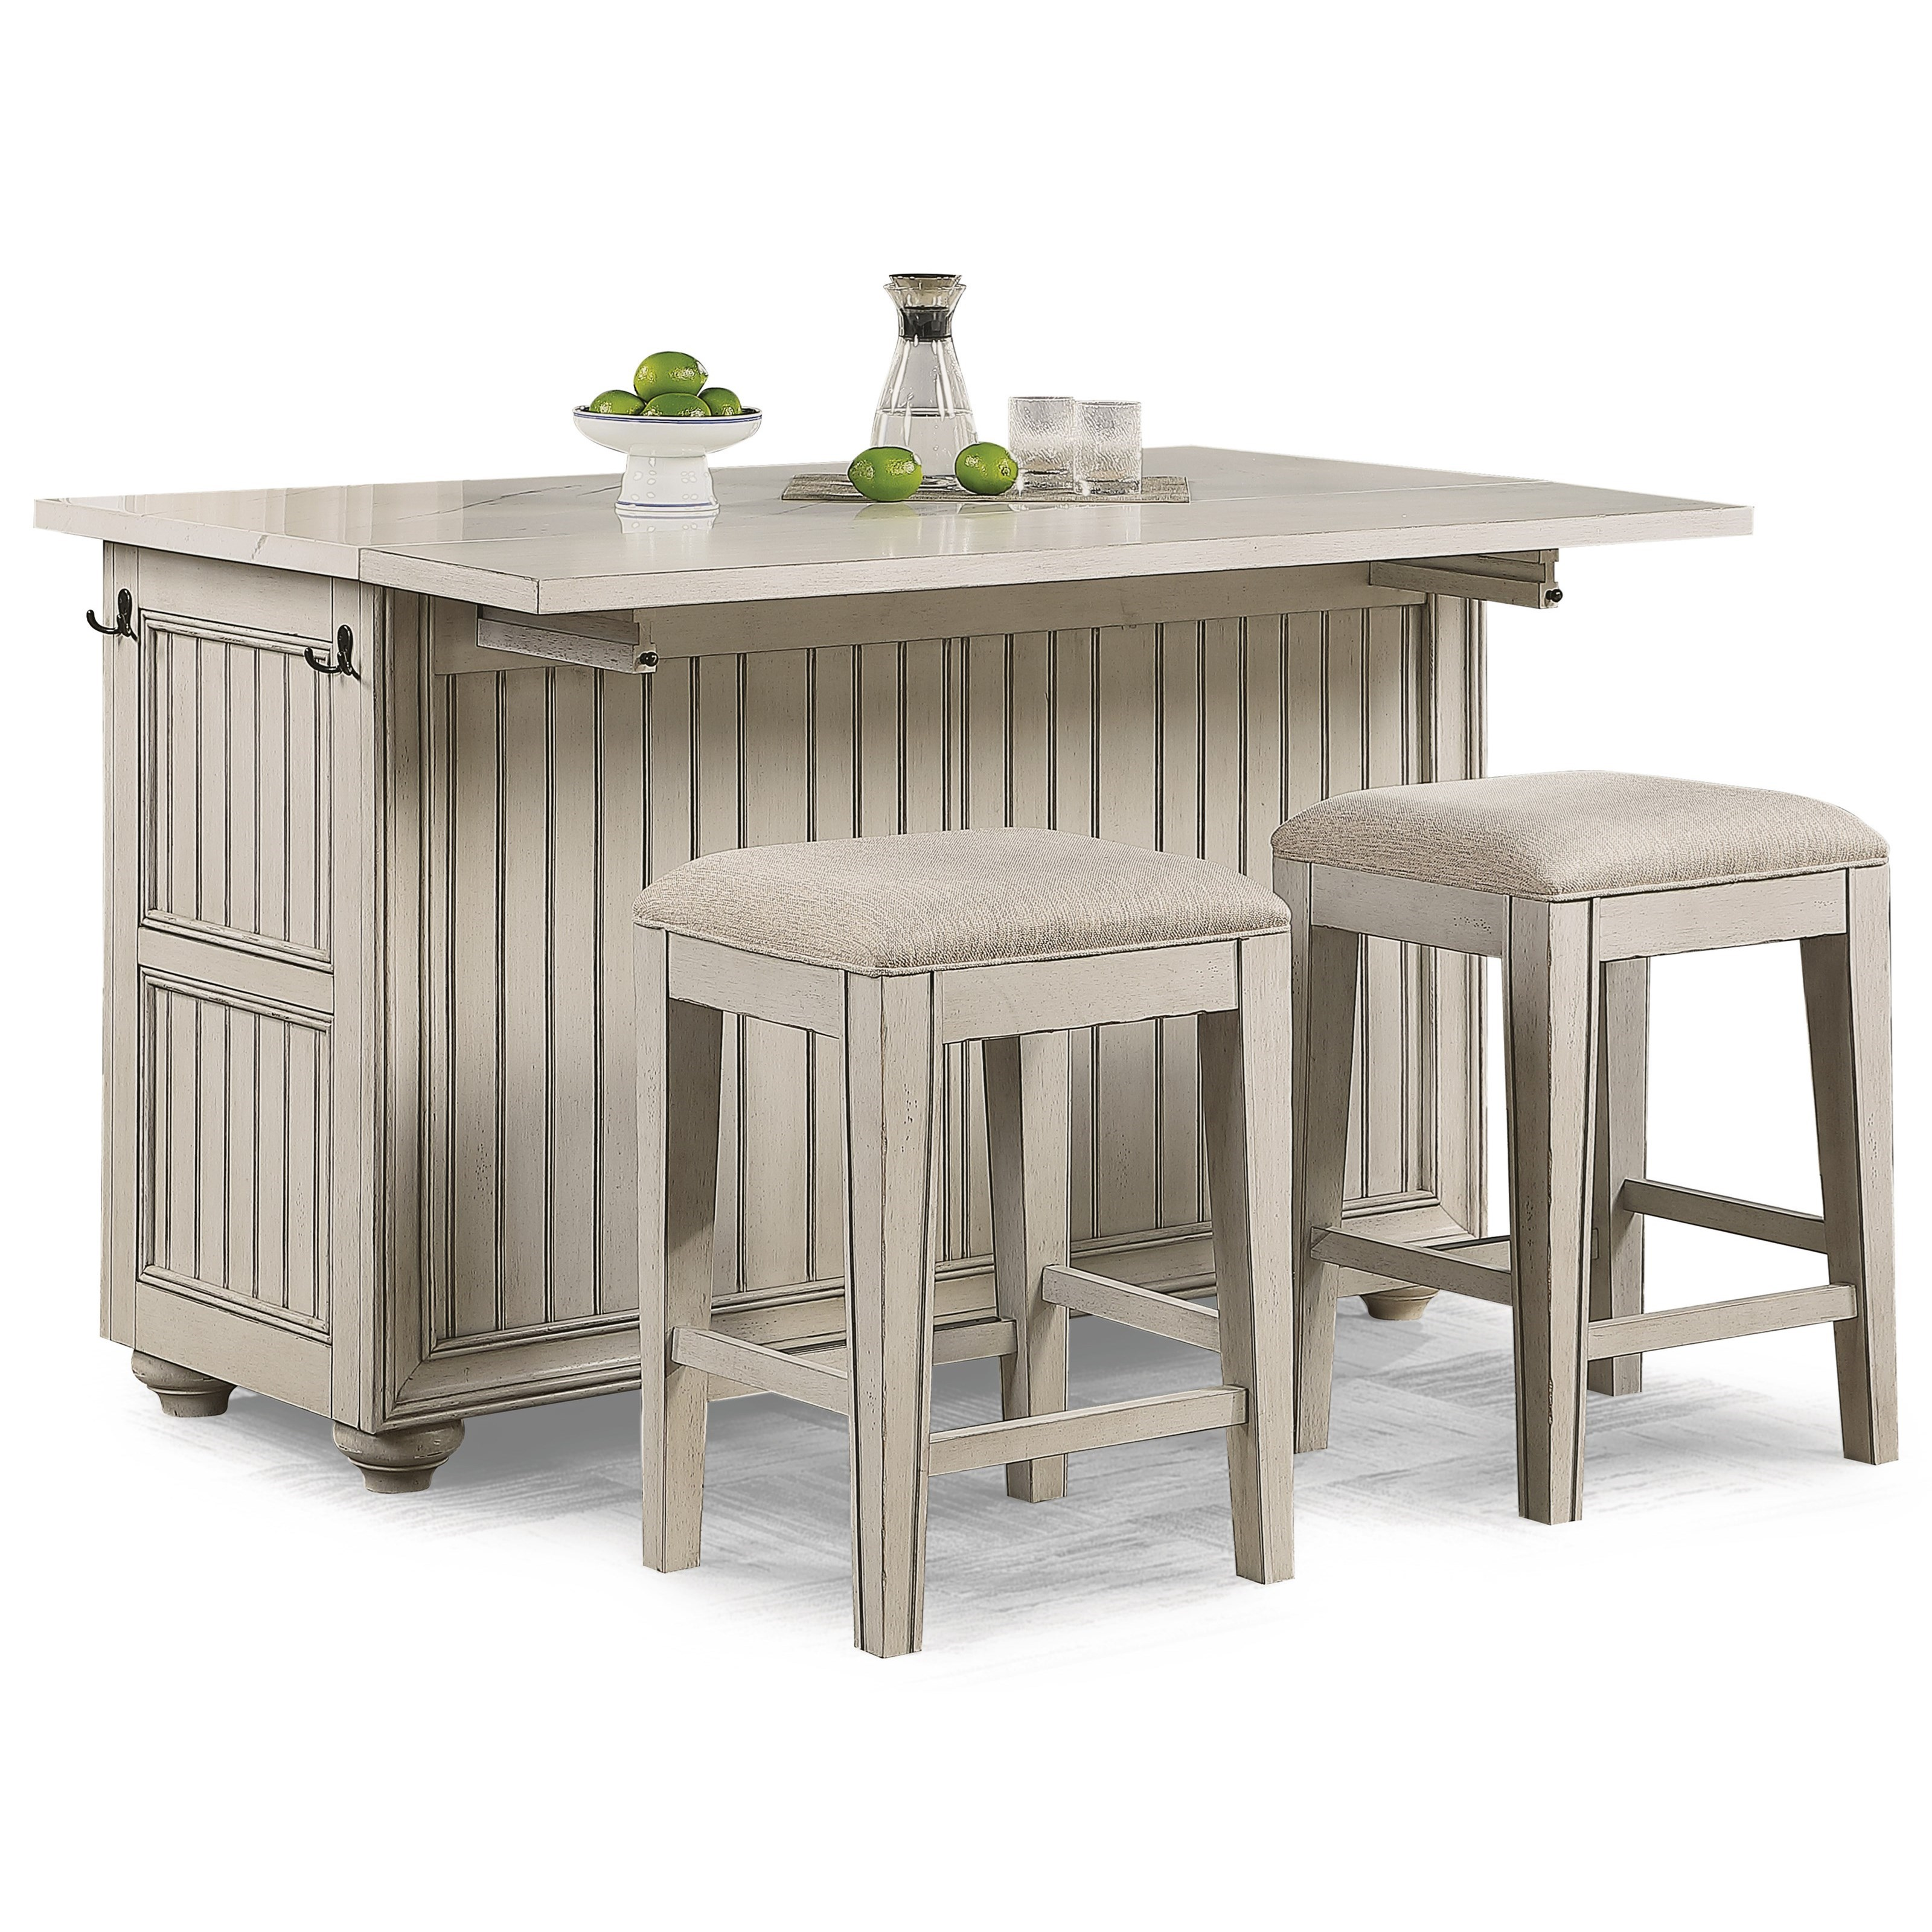 Flexsteel Wynwood Collection Harmony 3 Piece Cottage Dining Set With Kitchen Island Furniture Barn Pub Table And Stool Sets